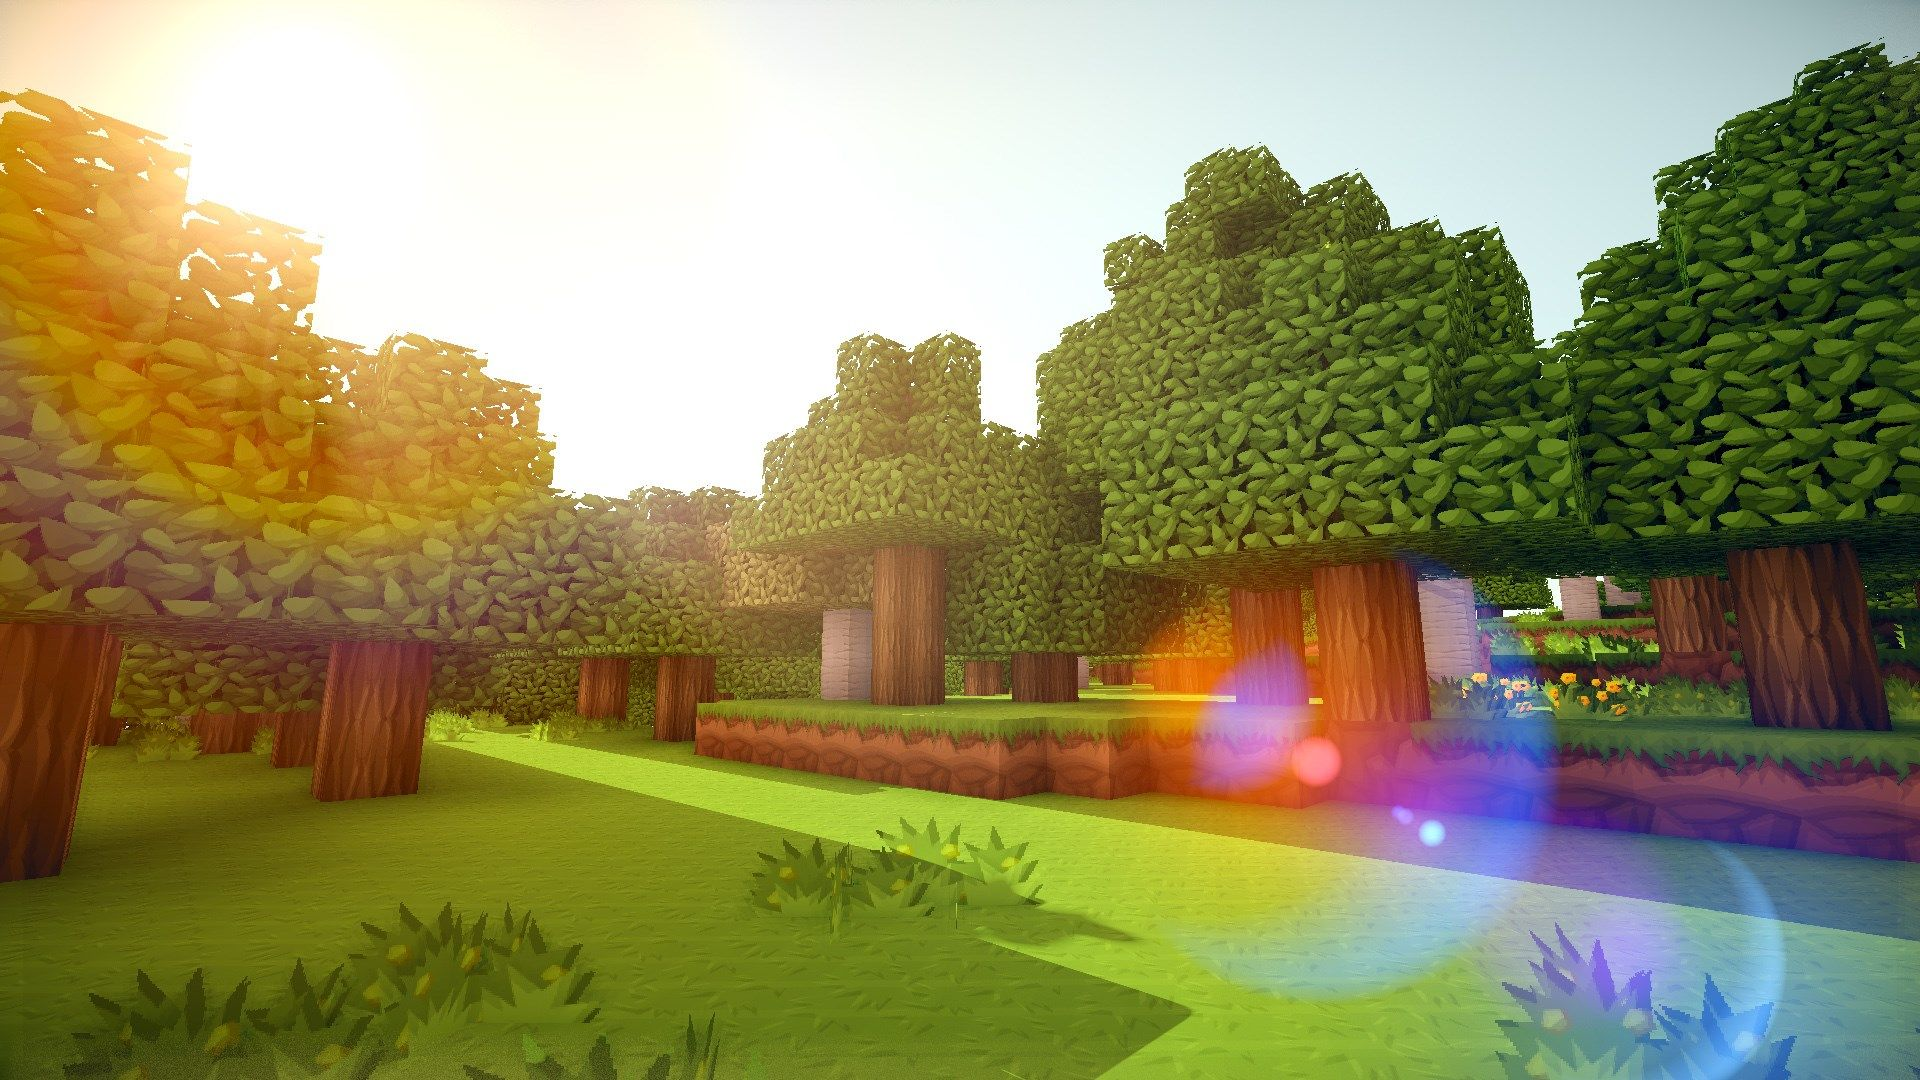 Minecraft 4k Wallpaper posted by Christopher Sellers